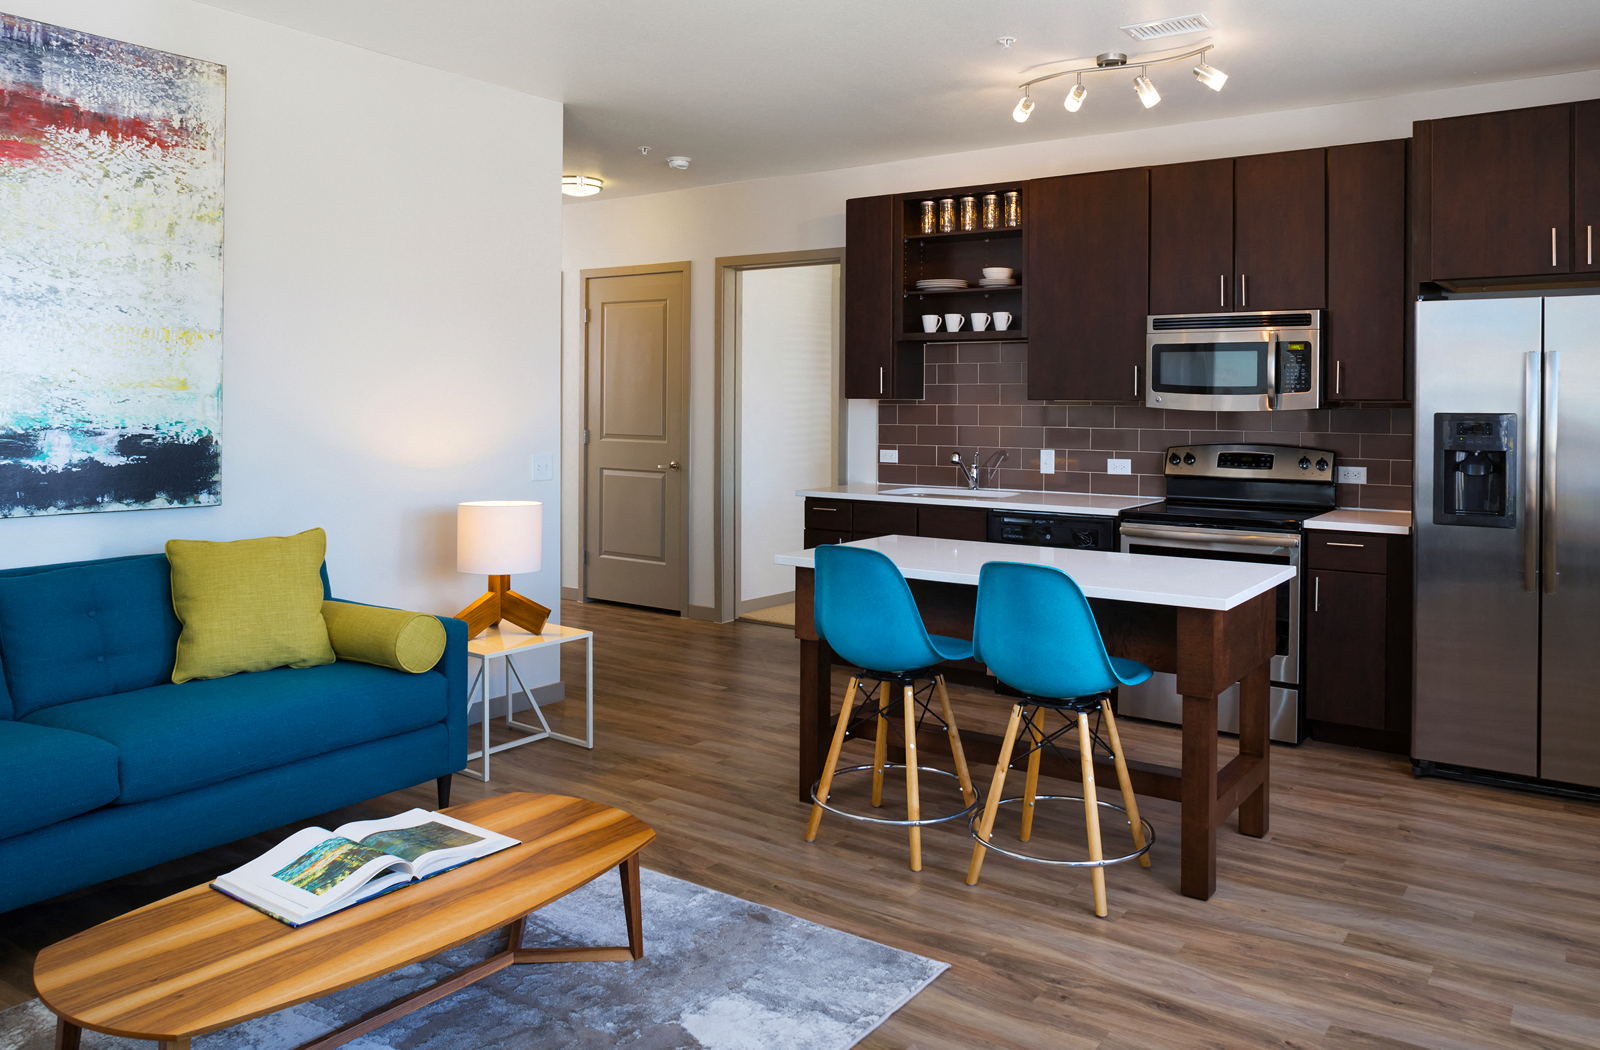 Island Kitchens At The Casey, Denver, CO 80202